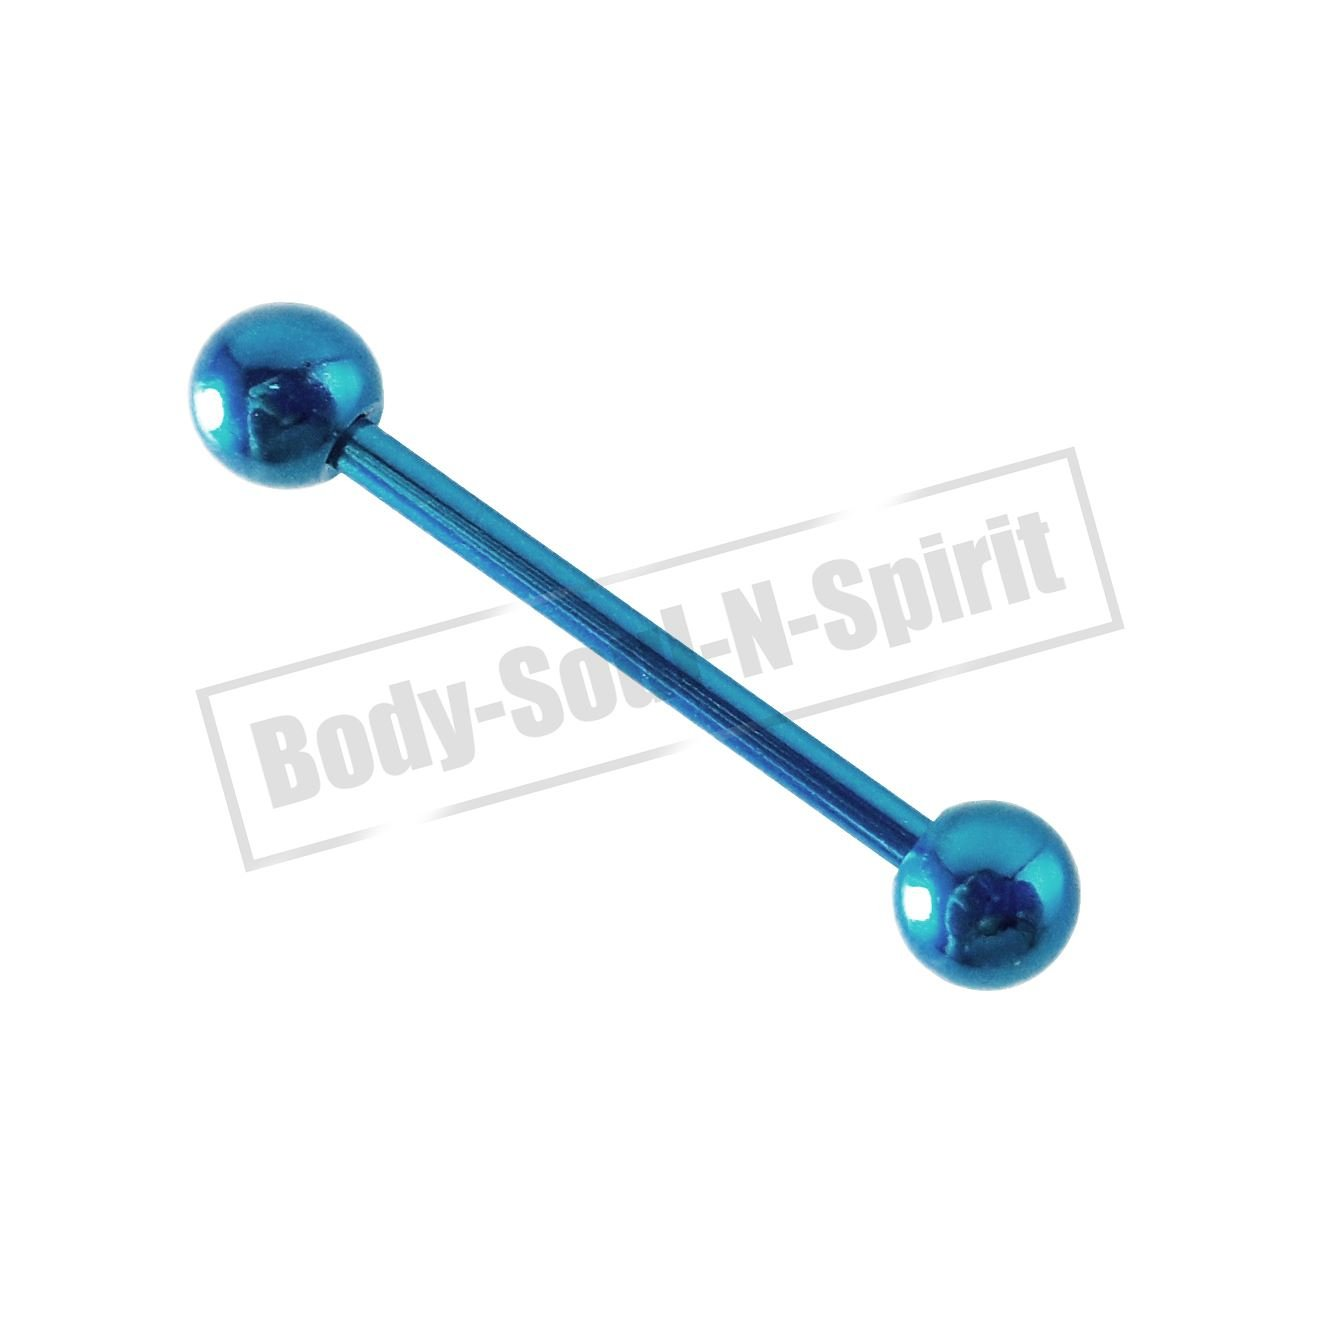 TONGUE BARS 18 mm balls barbell nipple PIERCING Sky RINGS BODY JEWELRY NEW body-soul-n-spirit